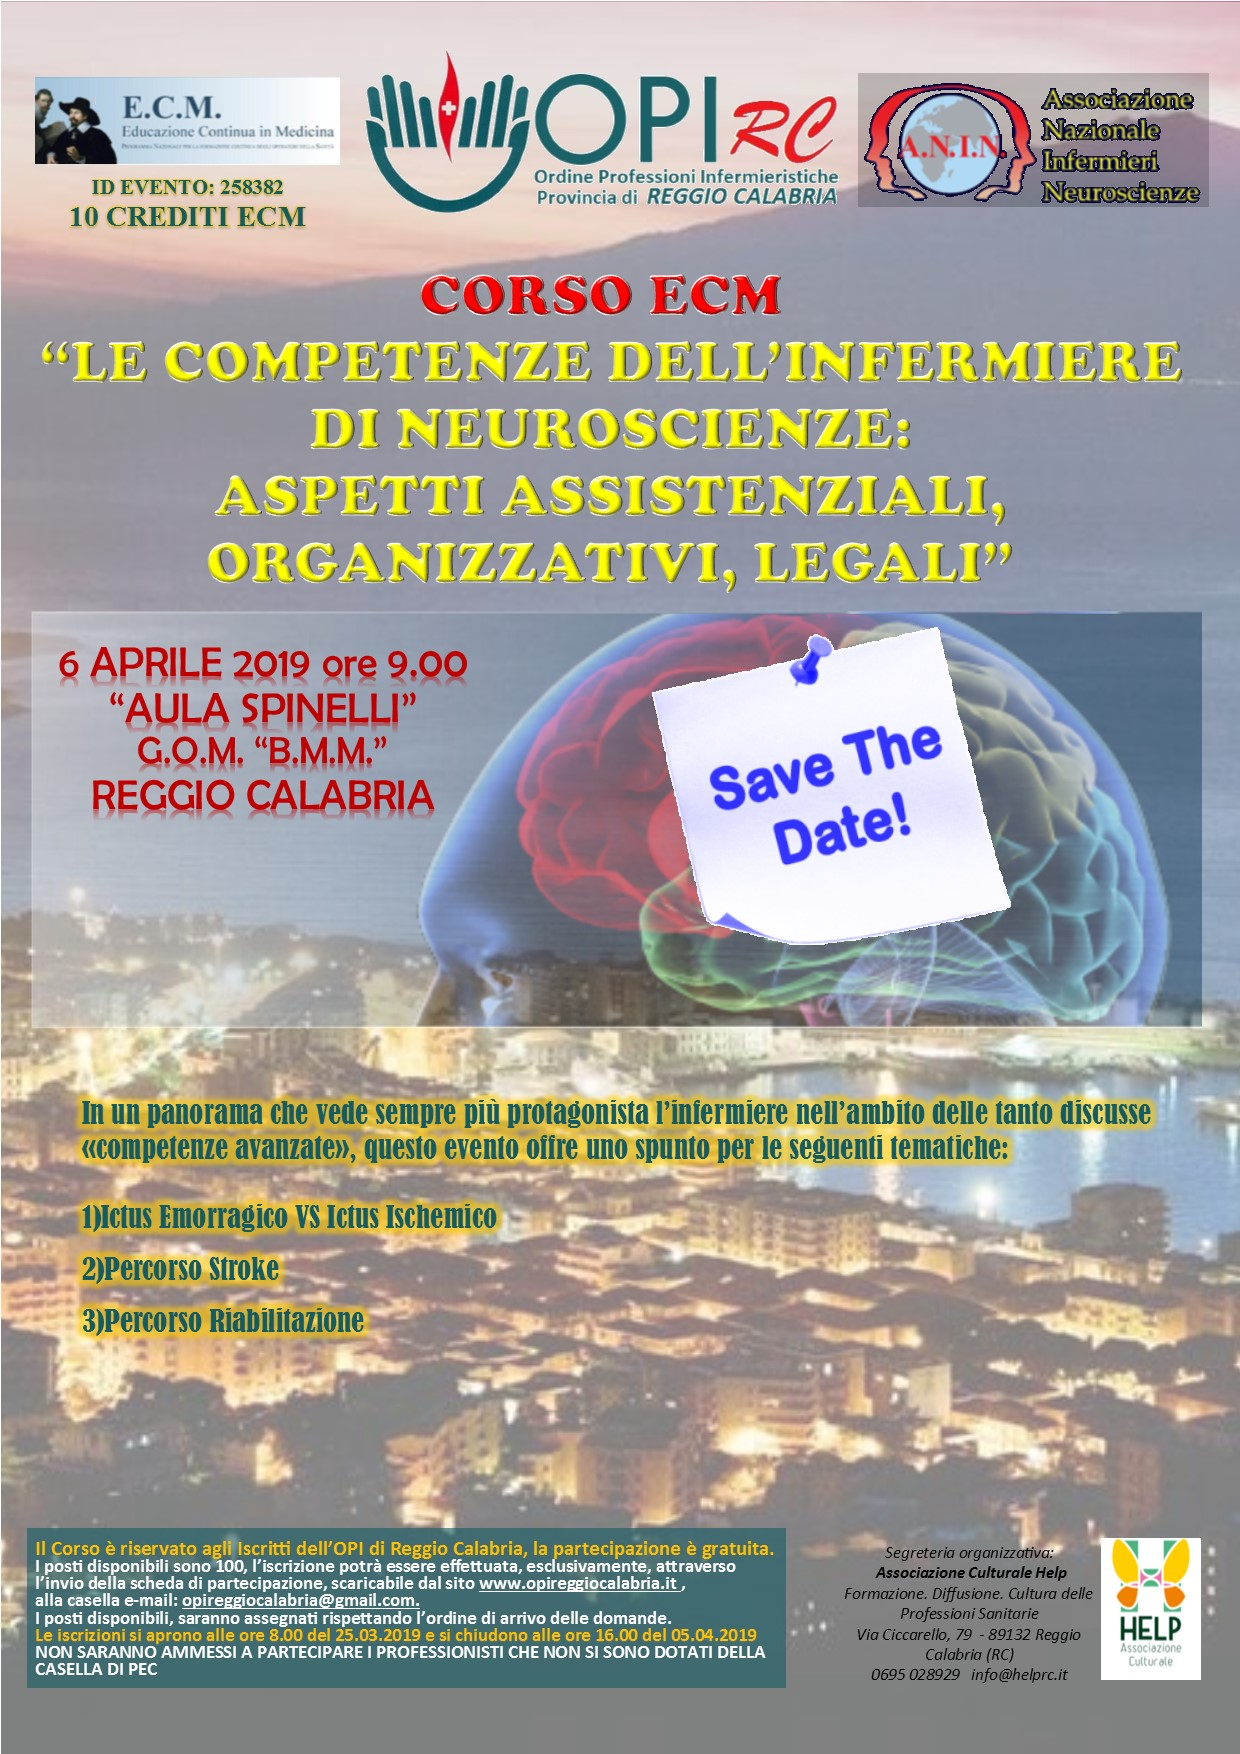 locandina ecm 06.04.2019 save the date